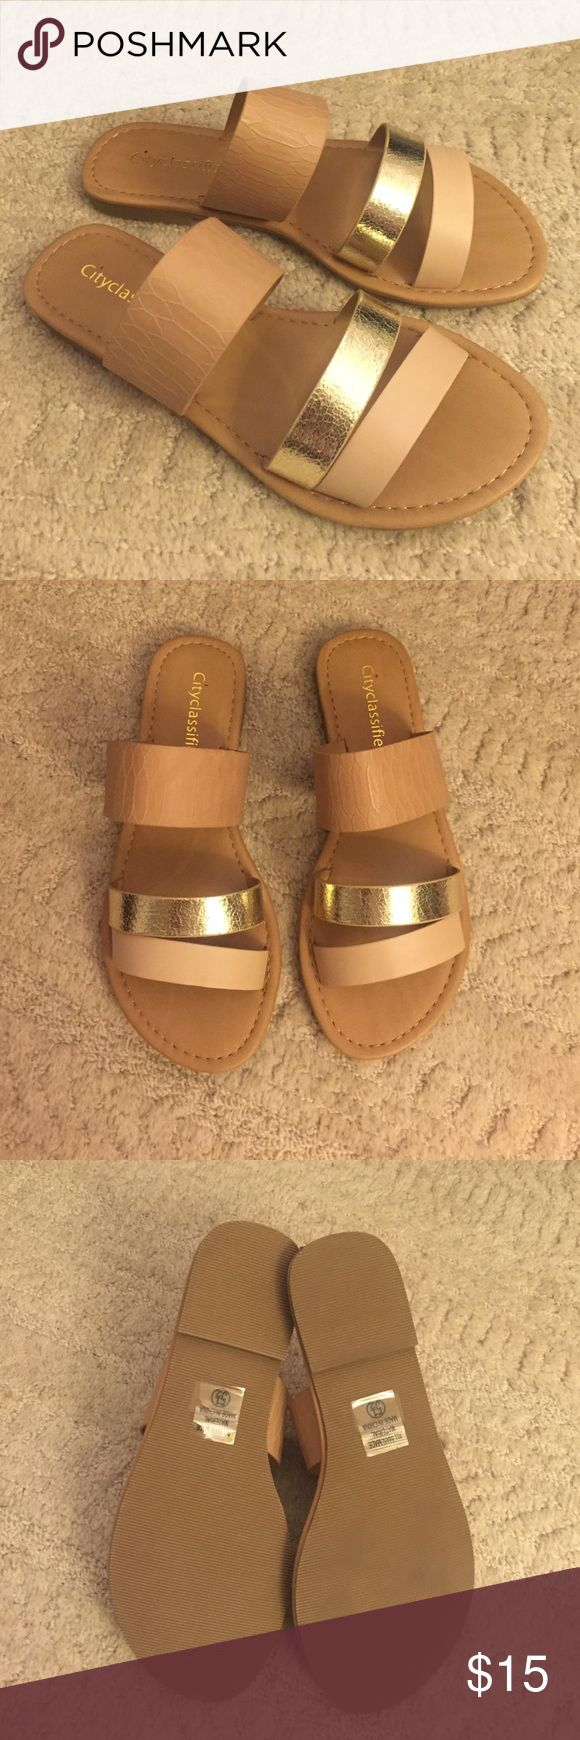 Tan Gold Strappy Flat Sandal Never worn. Very comfortable gold and tan strappy sandals Shoes Sandals